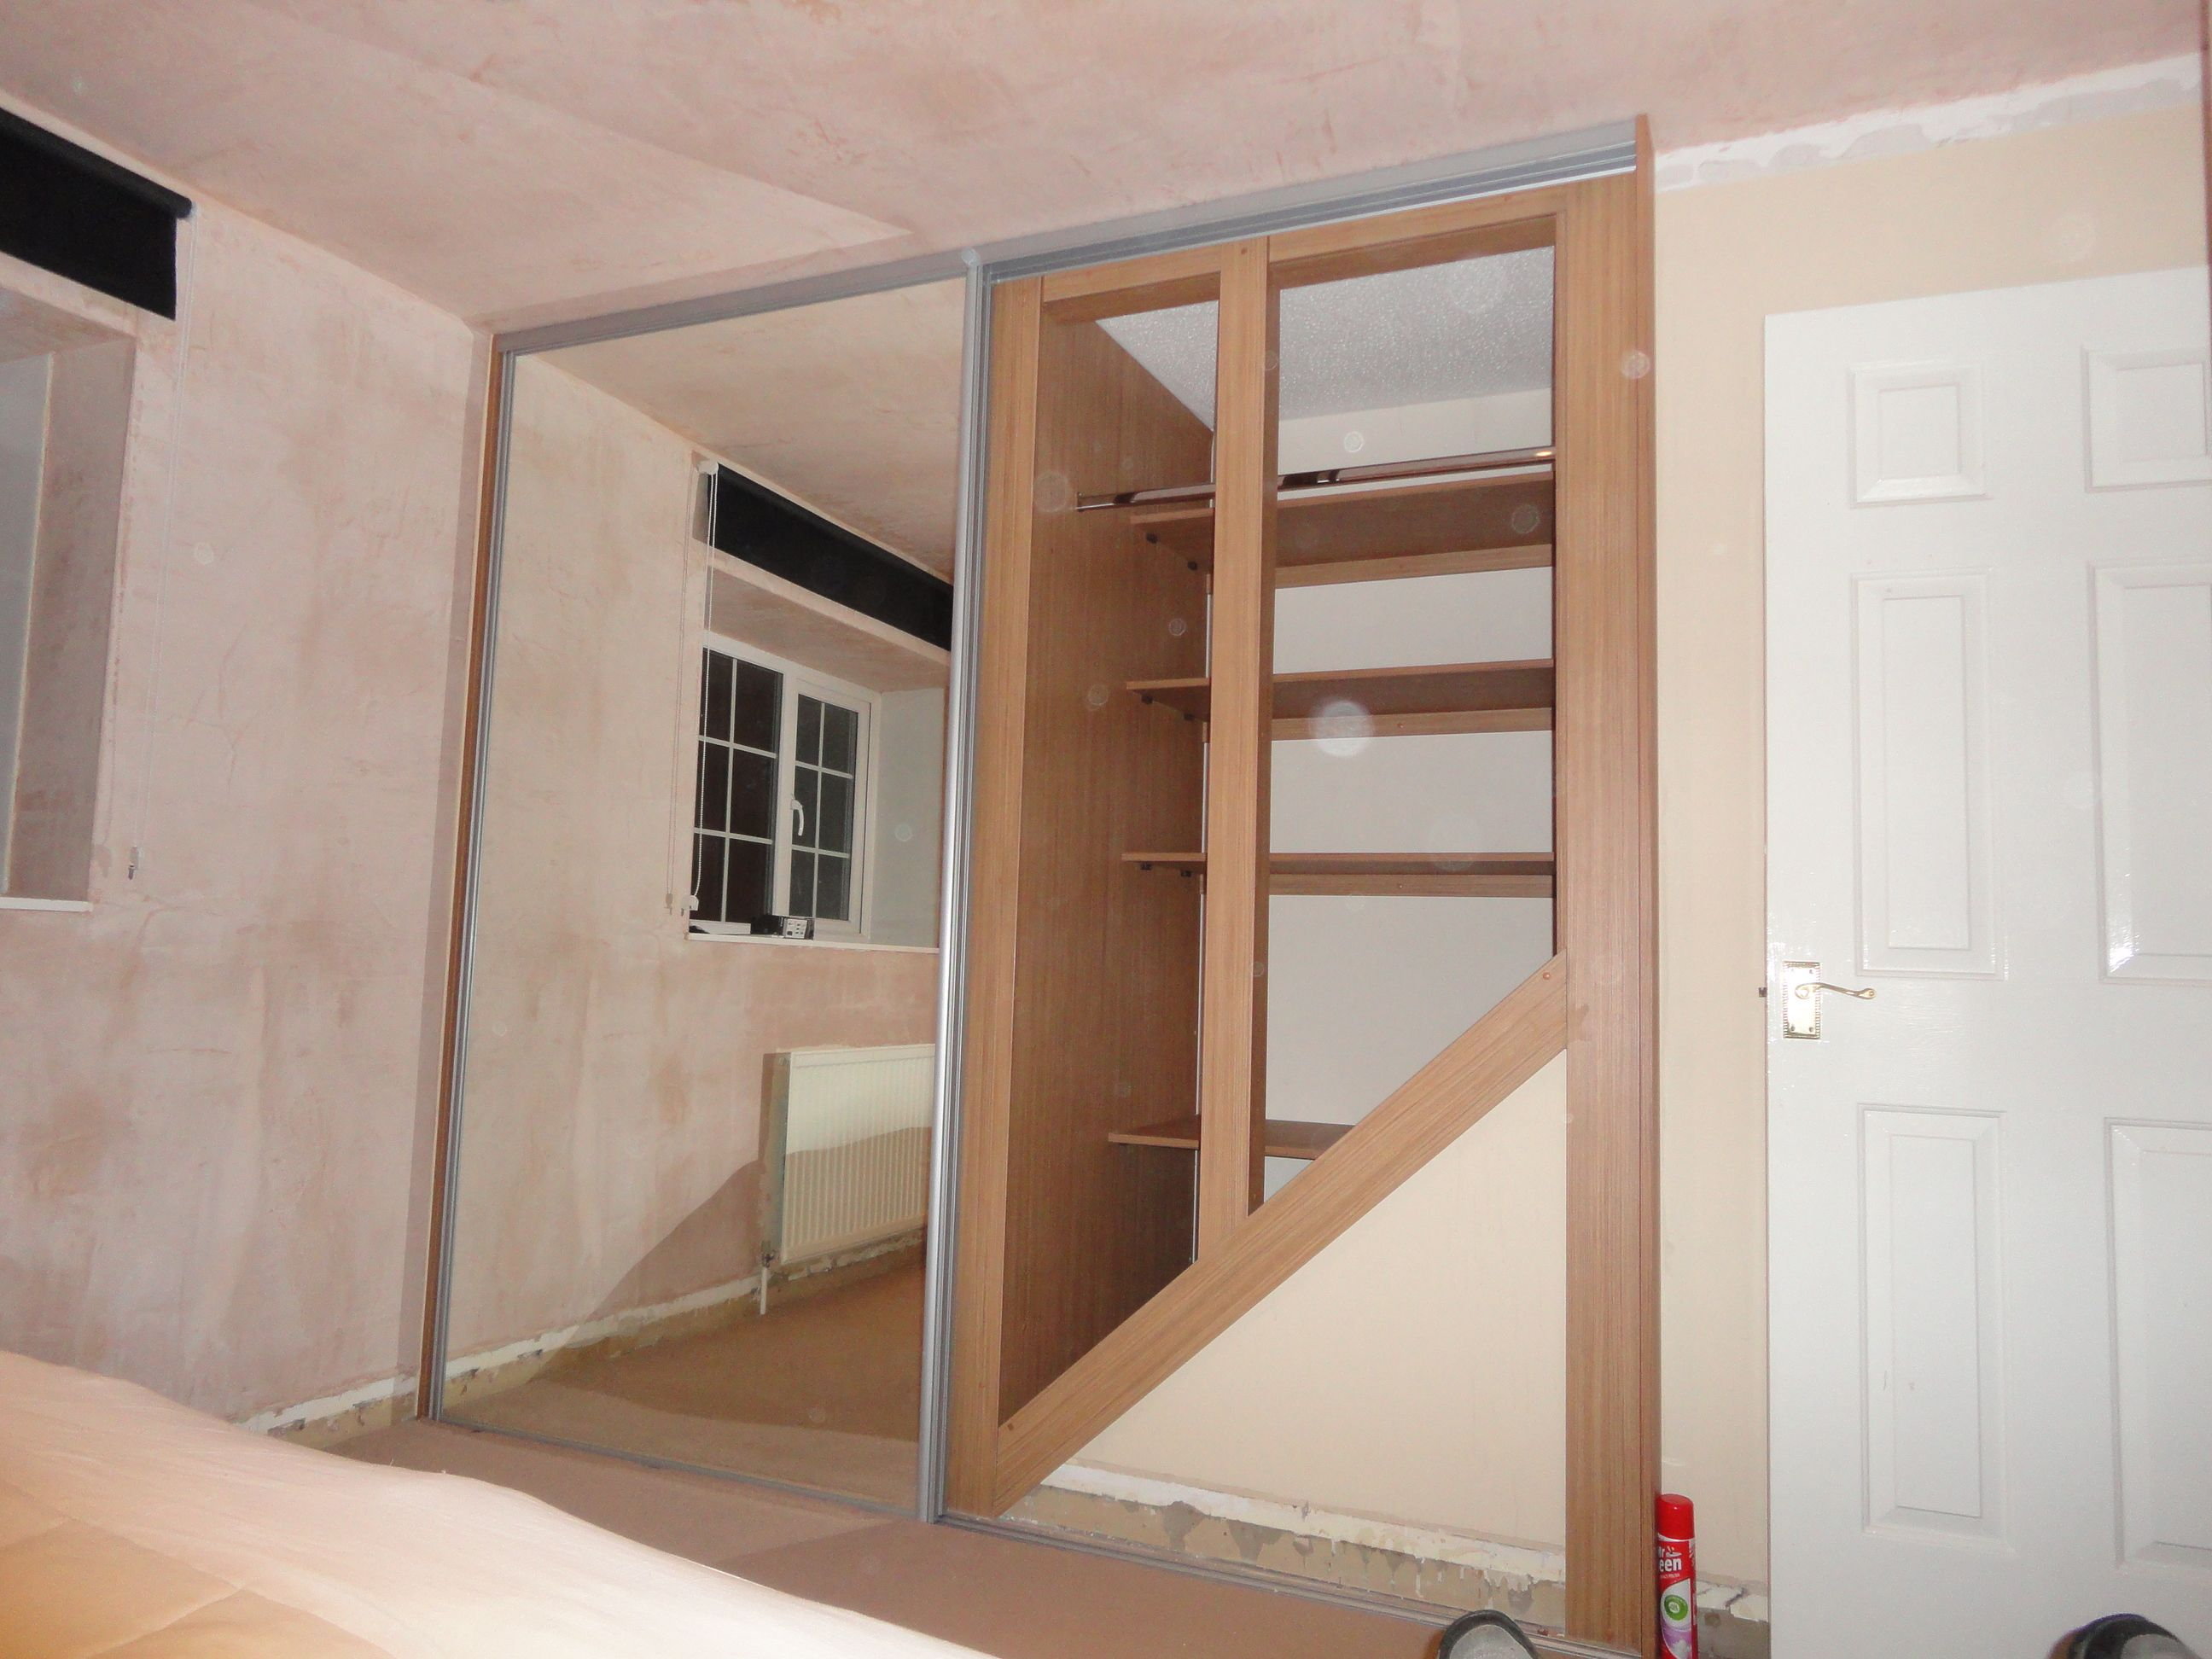 How To Build A Wardrobe Over Stair Bulkhead Arxiusarquitectura